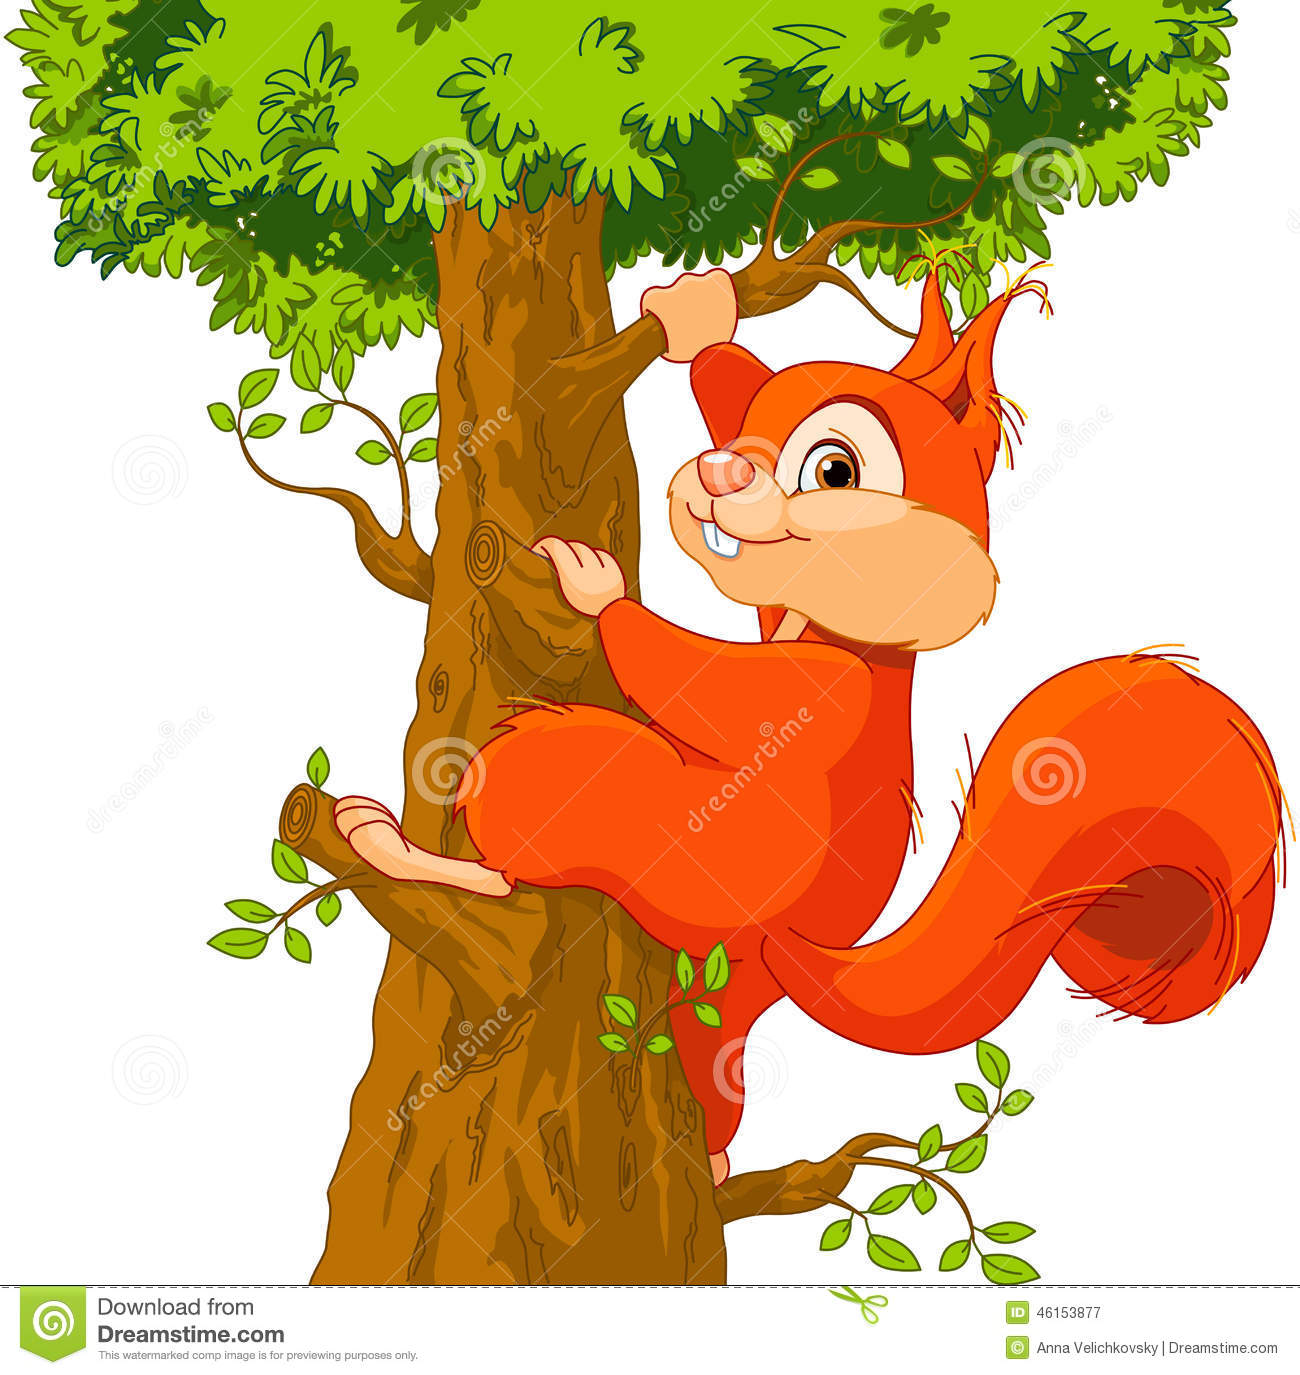 Squirrel On The Tree Stock Vector - Image: 46153877